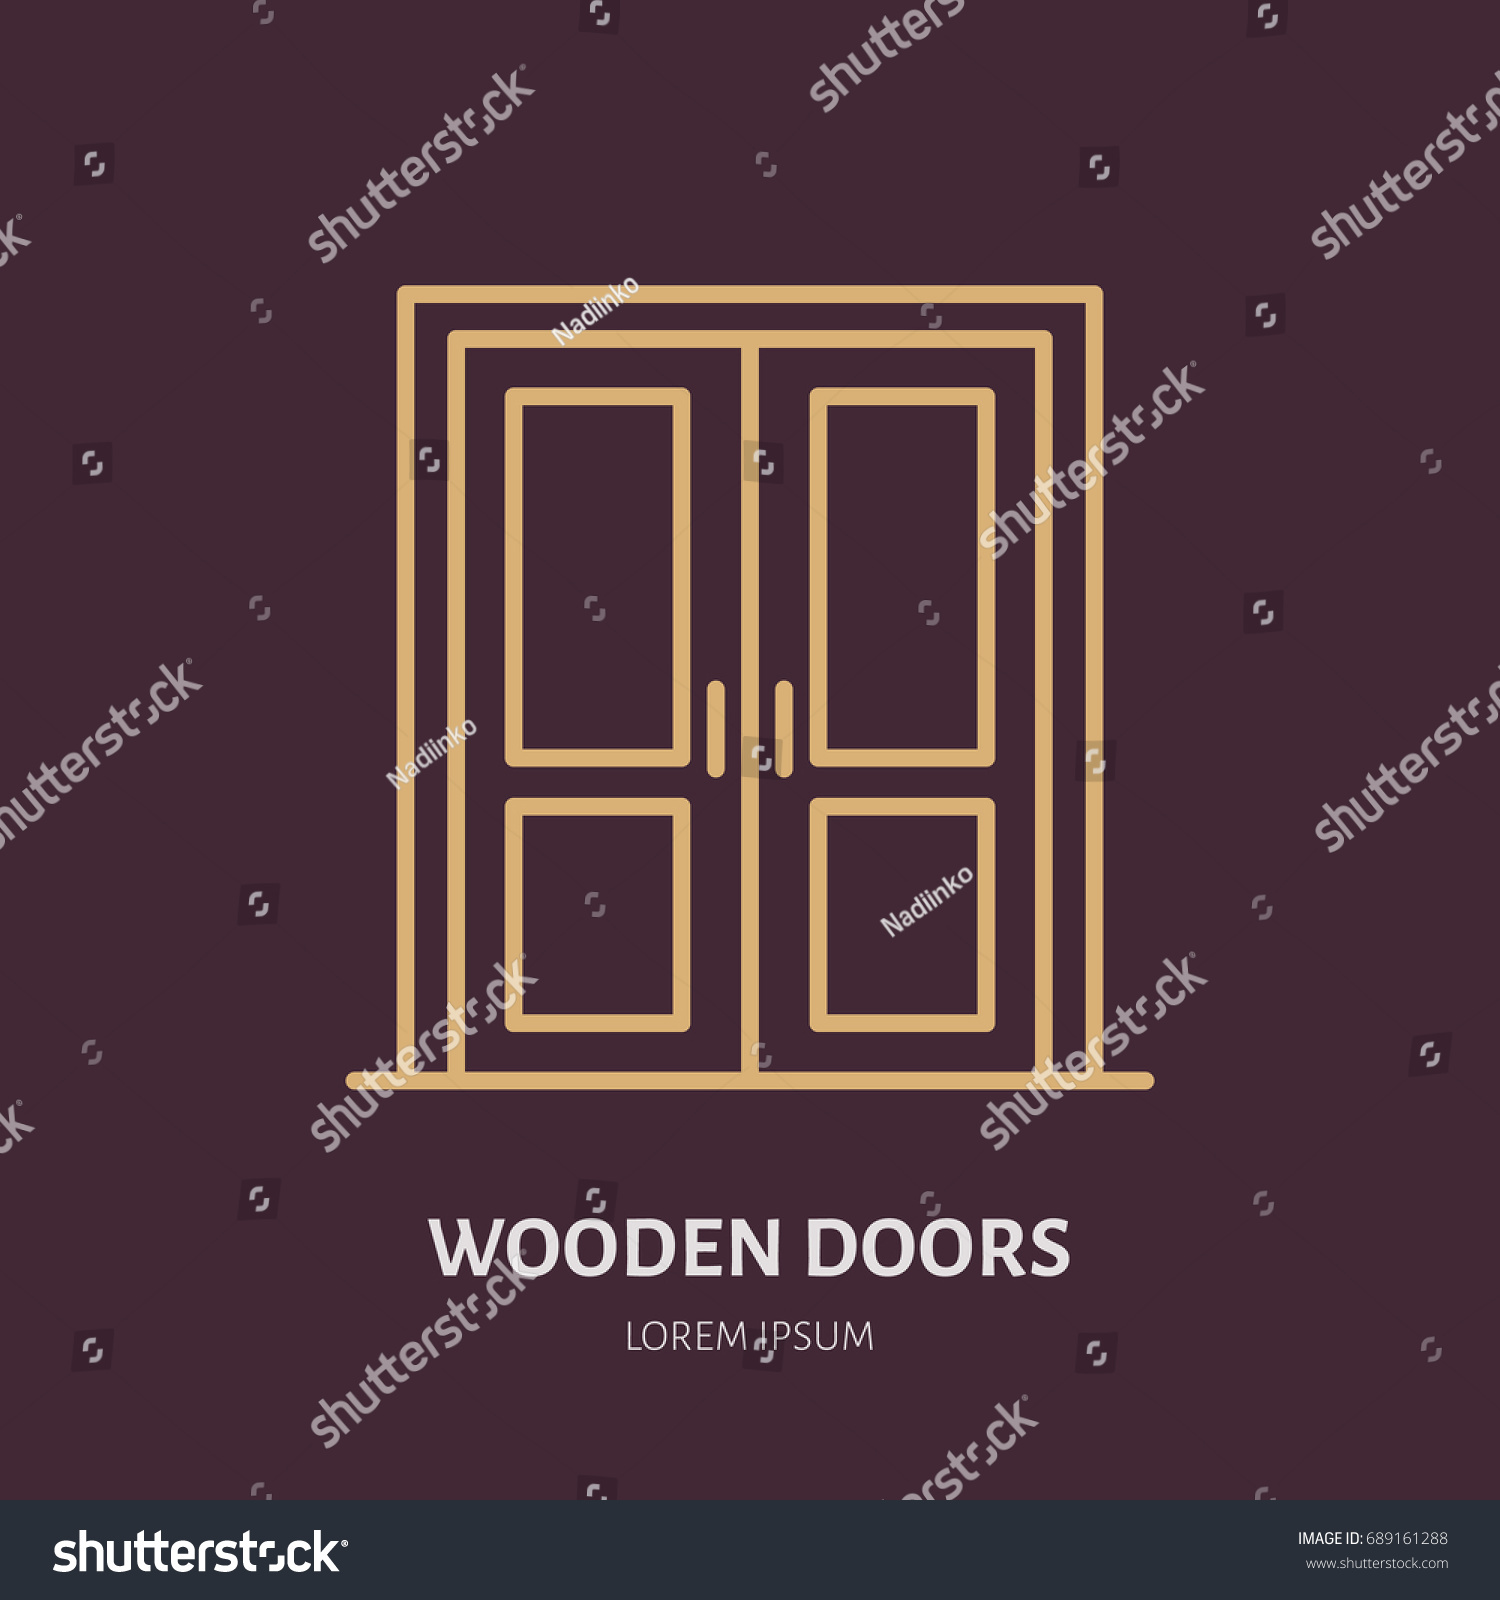 Wooden doors installation logo repair flat stock vector 689161288 shutterstock for Interior doors installation services